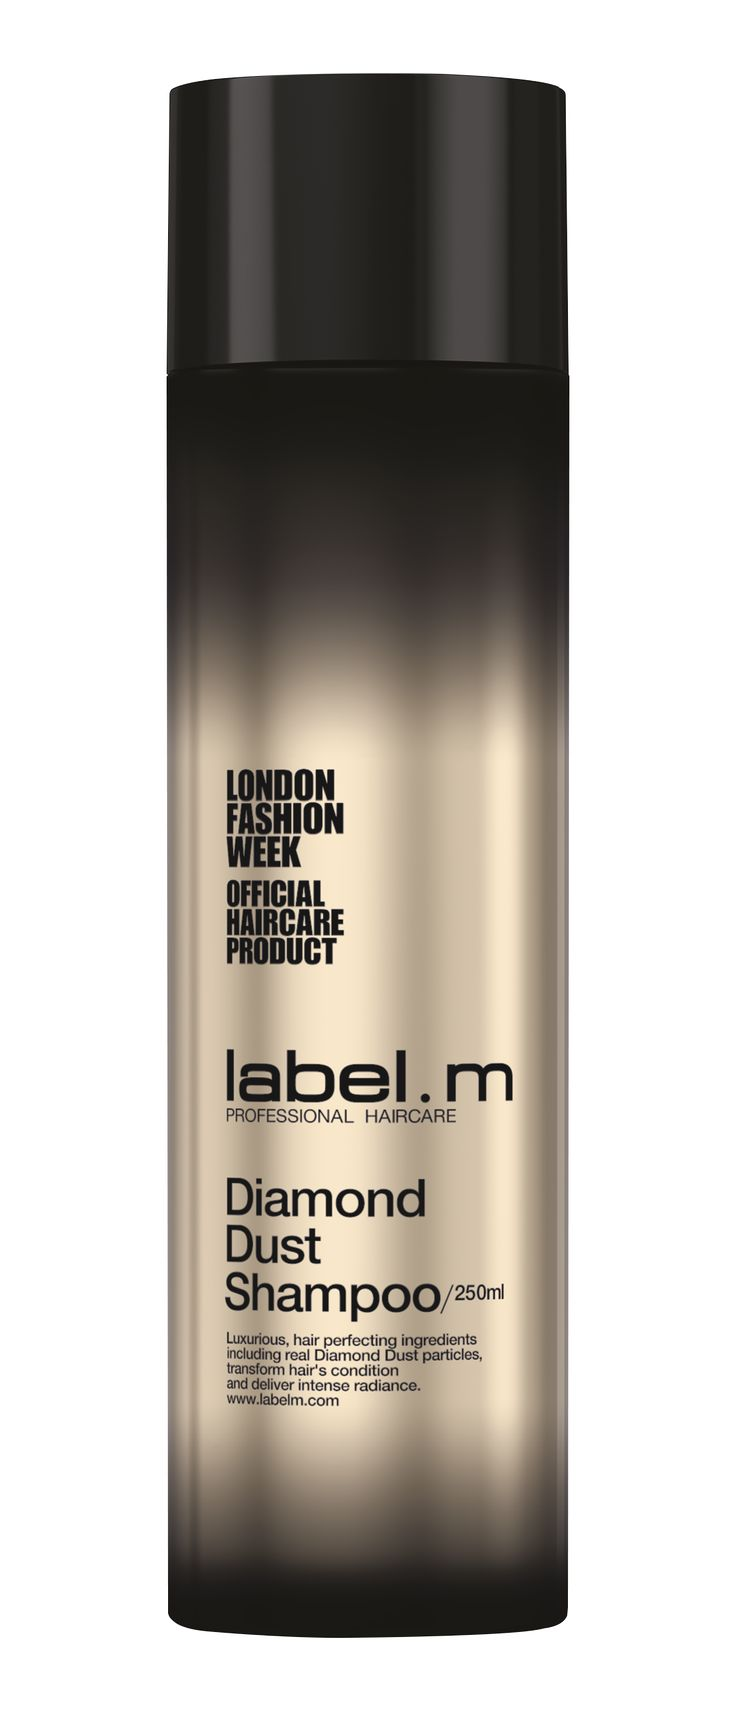 label.m Diamond Dust Shampoo Diamond Dust particles exfoliate individual hair strands, removing excess build-up of toxins whilst pH balancing champagne acts as a gentle, yet deep natural cleanser revealing hairs' natural beauty and shine.